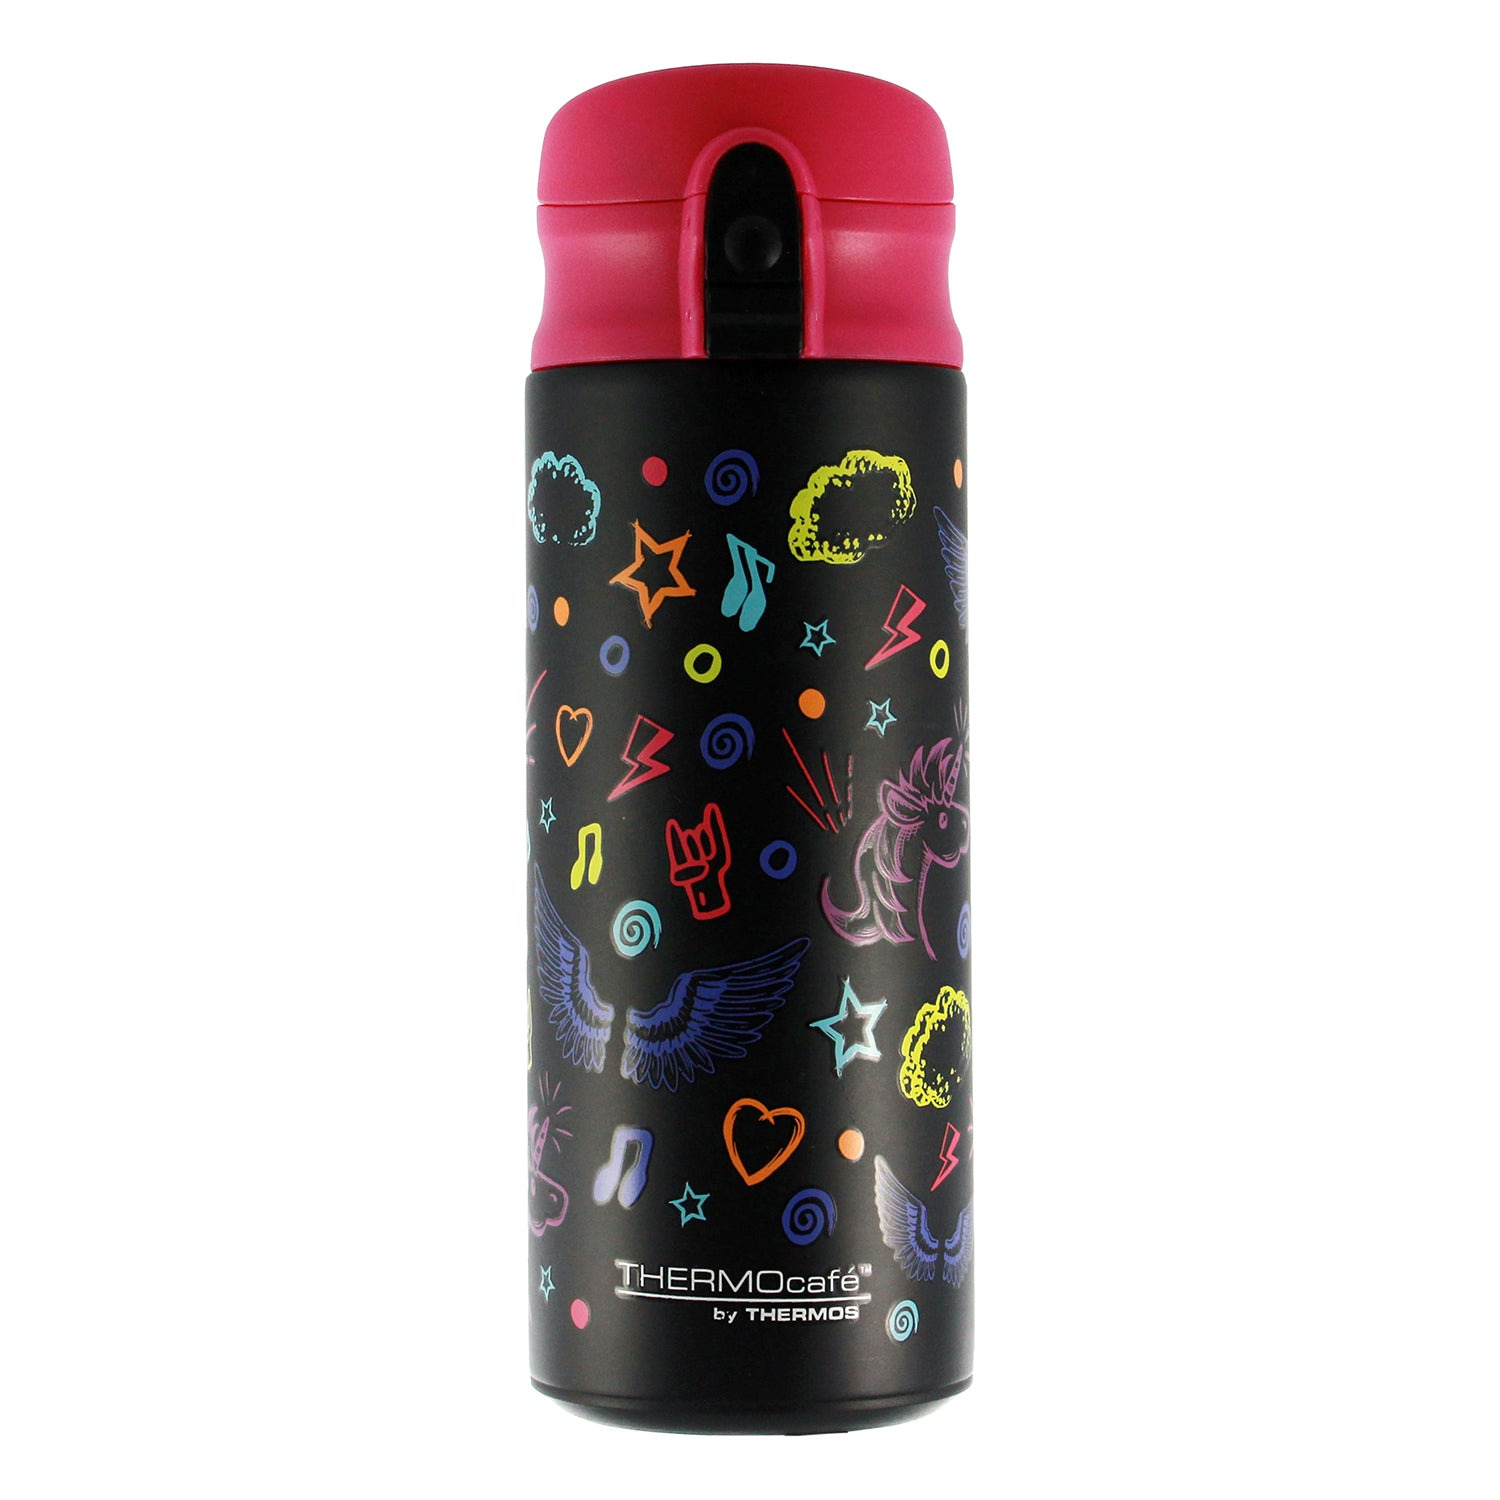 Botella 300ml Acero Inoxidable Unicornio